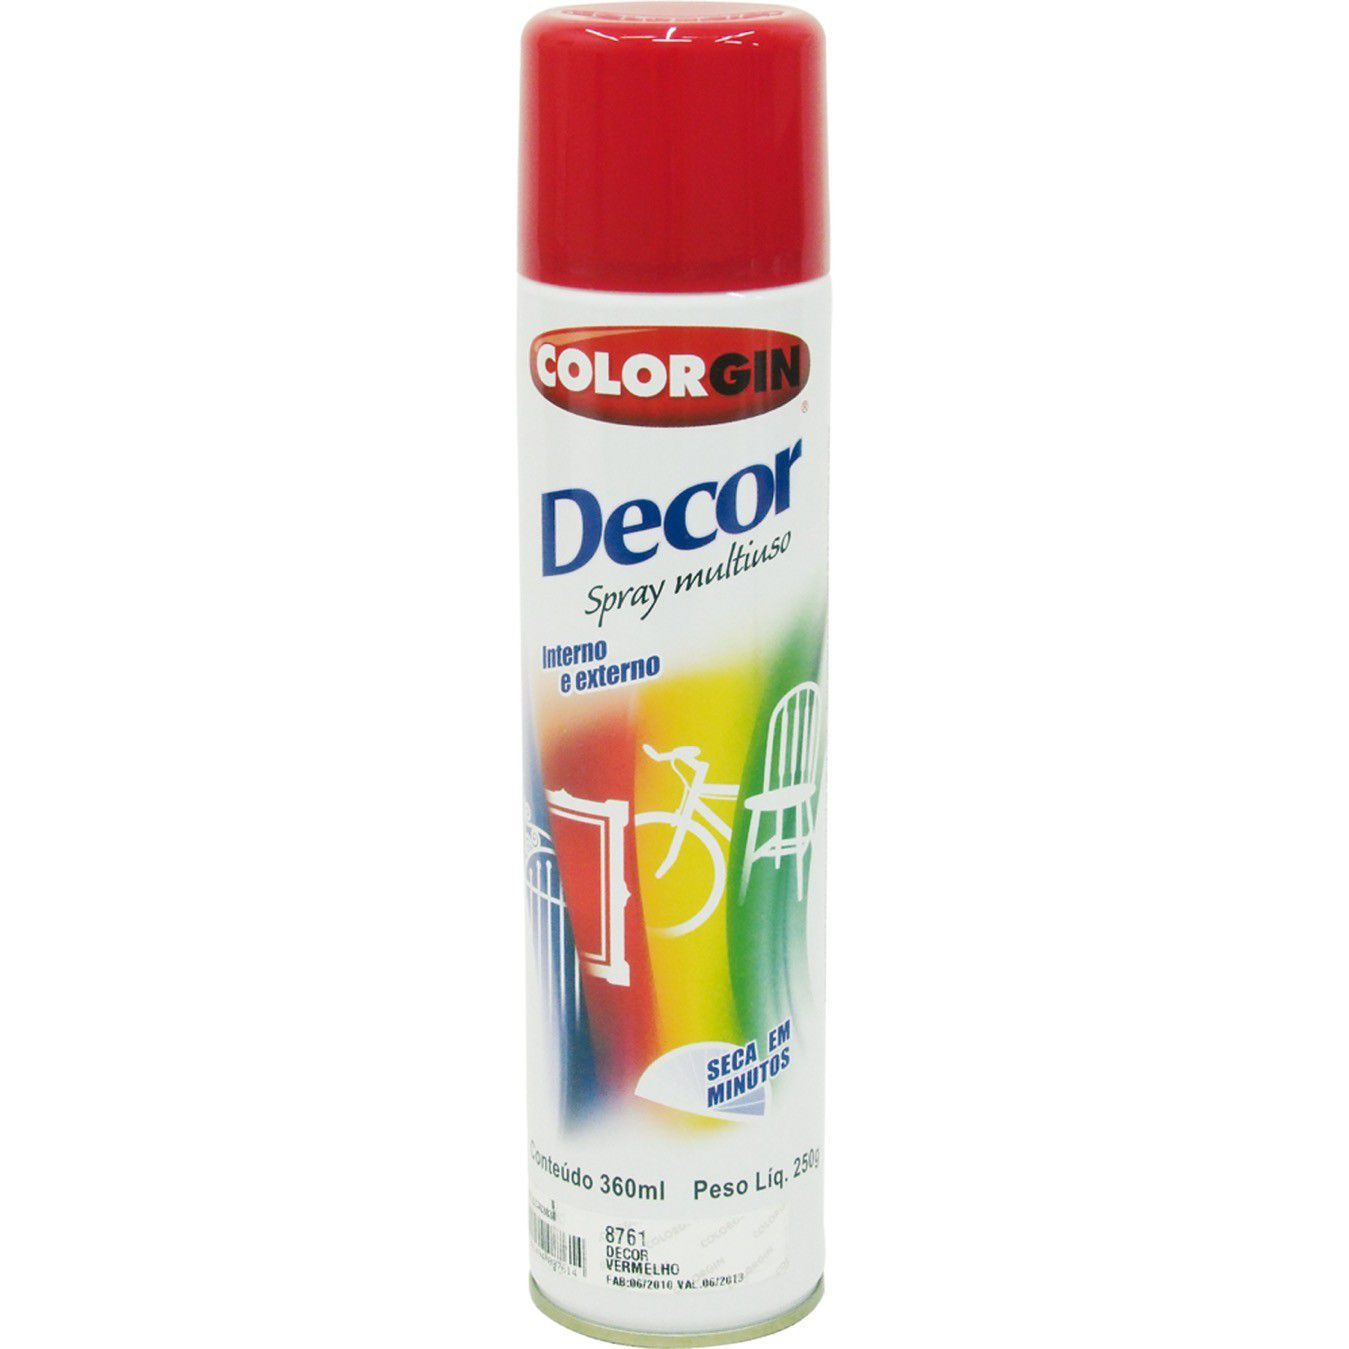 Tinta Spray Colorgin Decor Vermelho 360Ml #A Cx/6